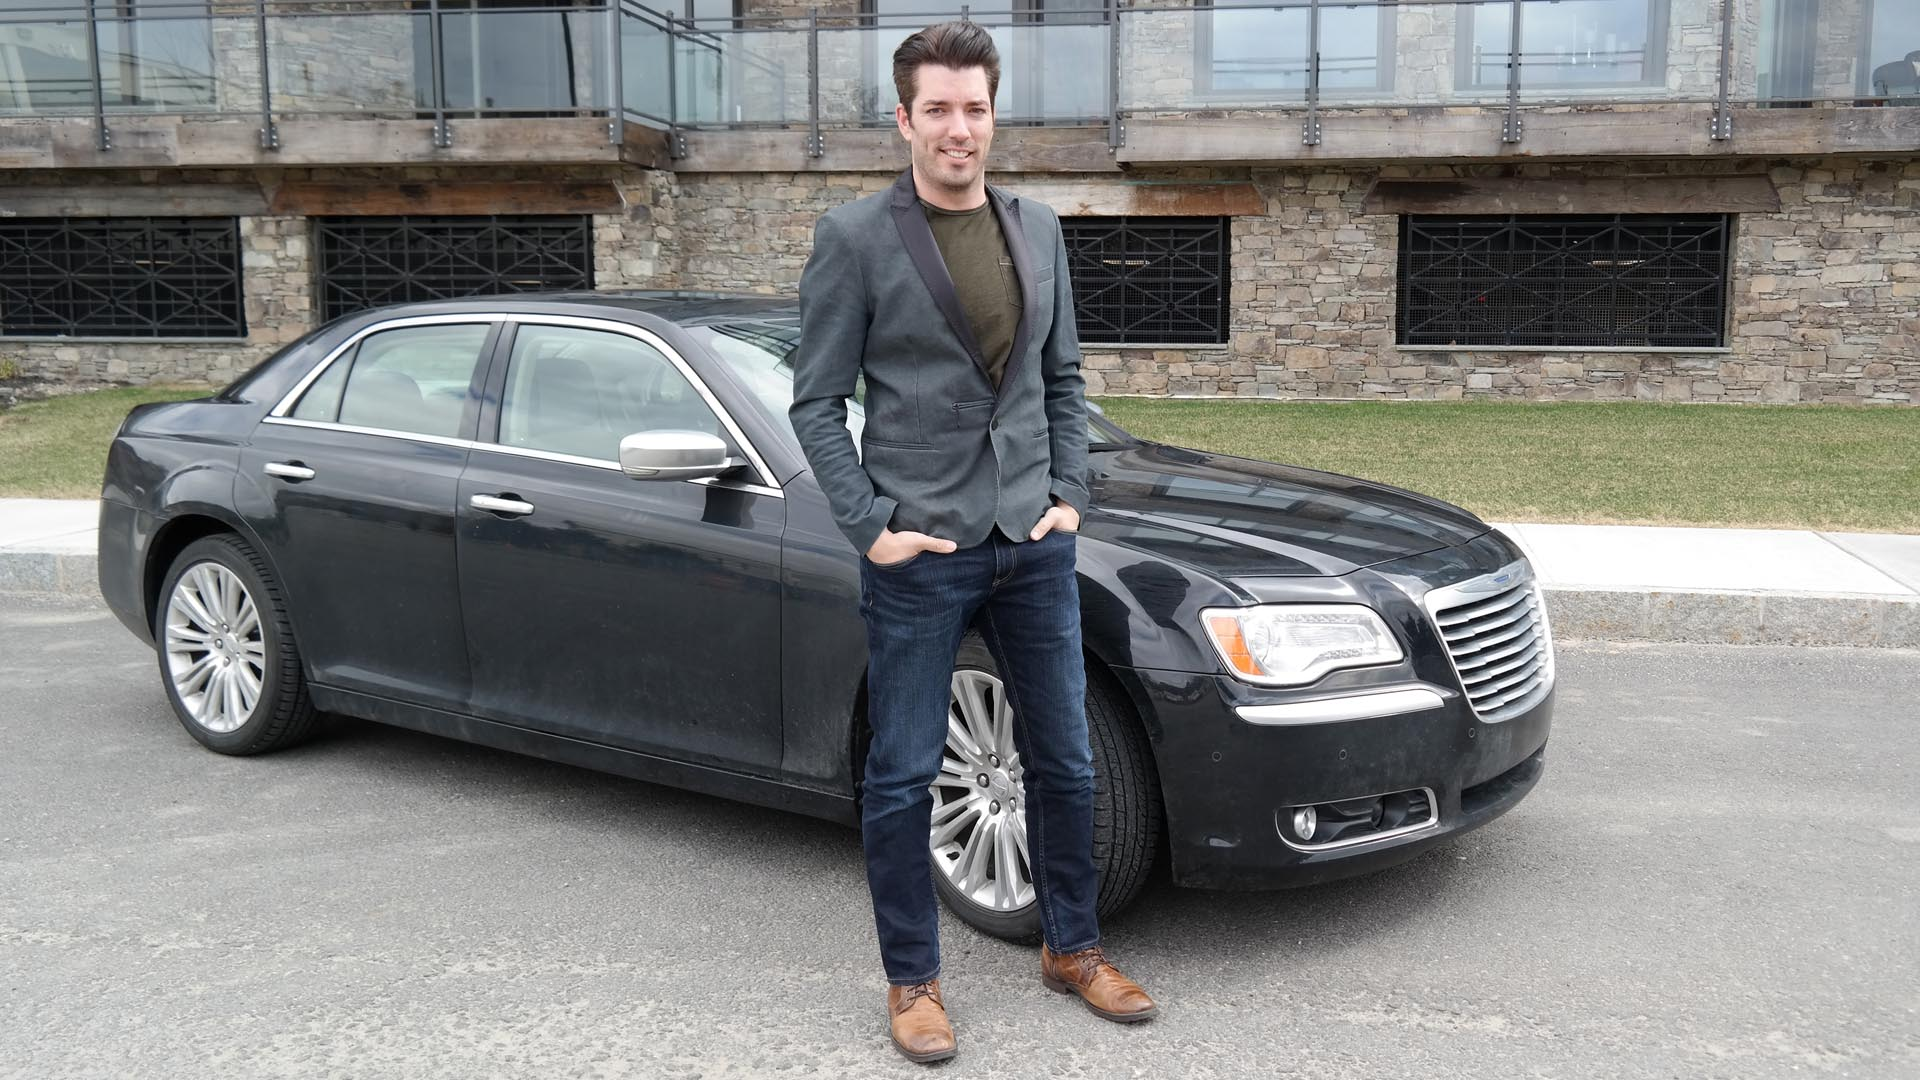 Jonathan with his 2014 Chrysler 300